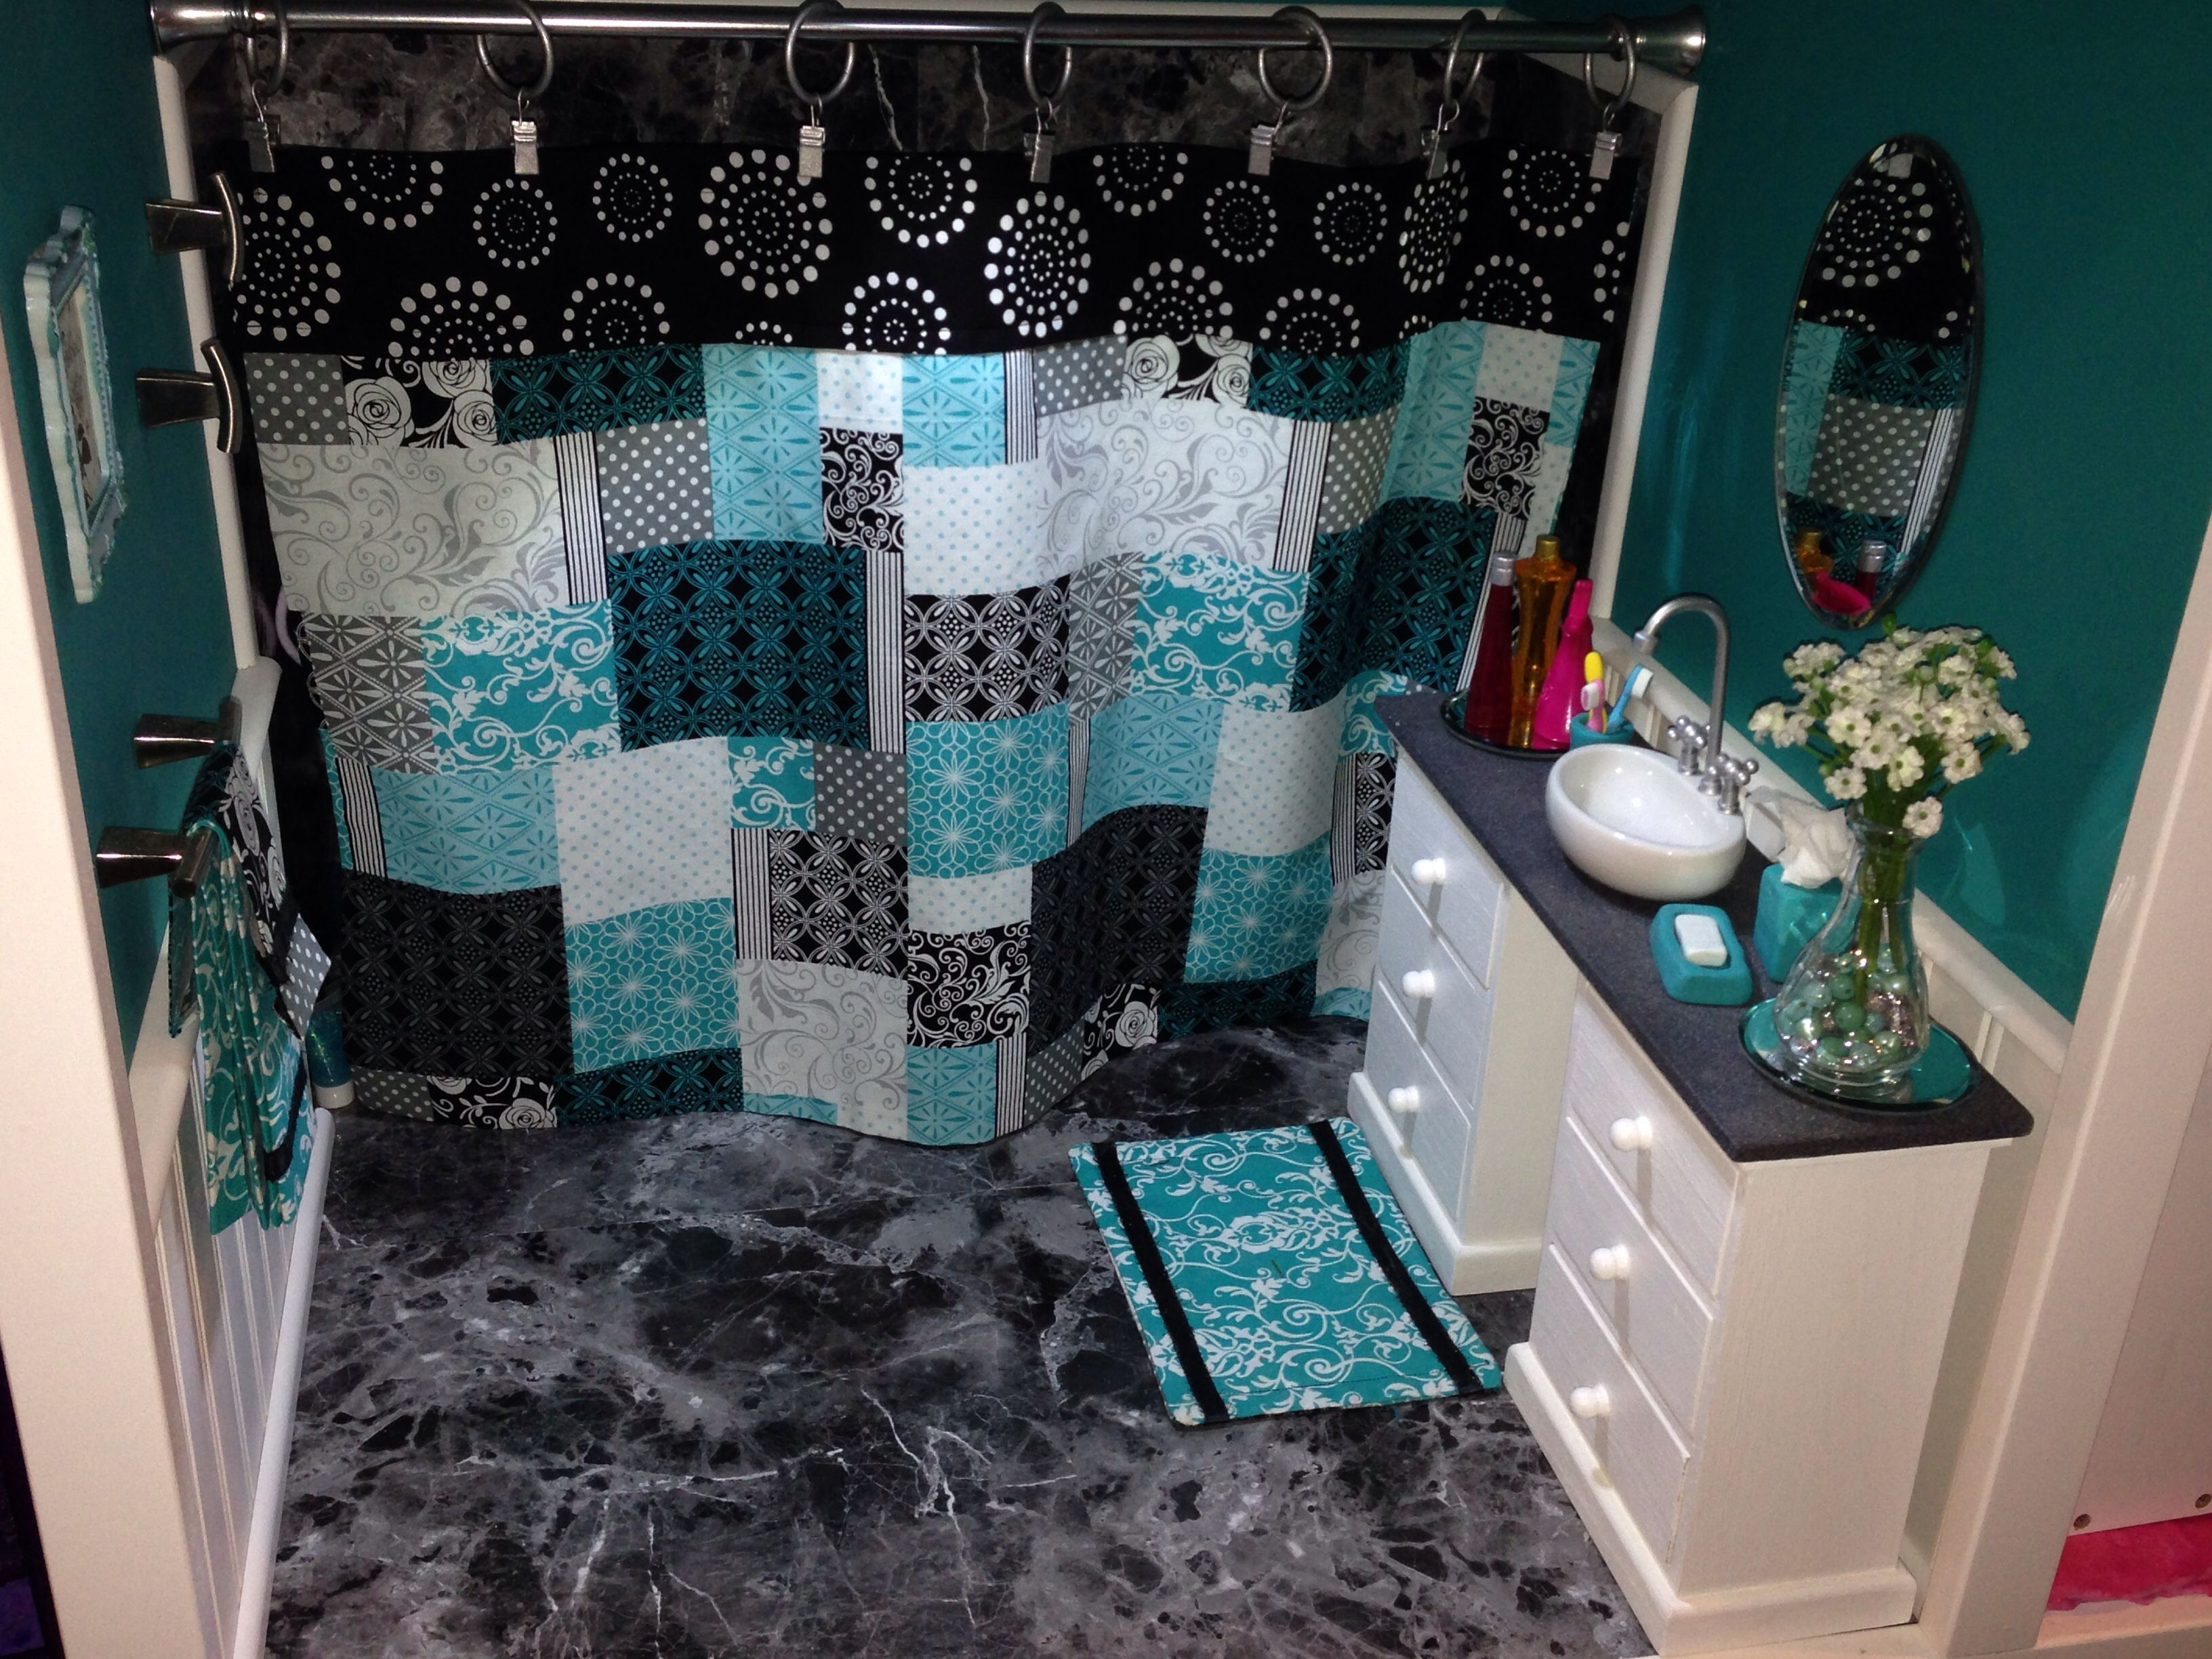 Mint green shower curtain and rugs - Just A View With The Curtain Closed Shower Curtain Rug Are Reversible The